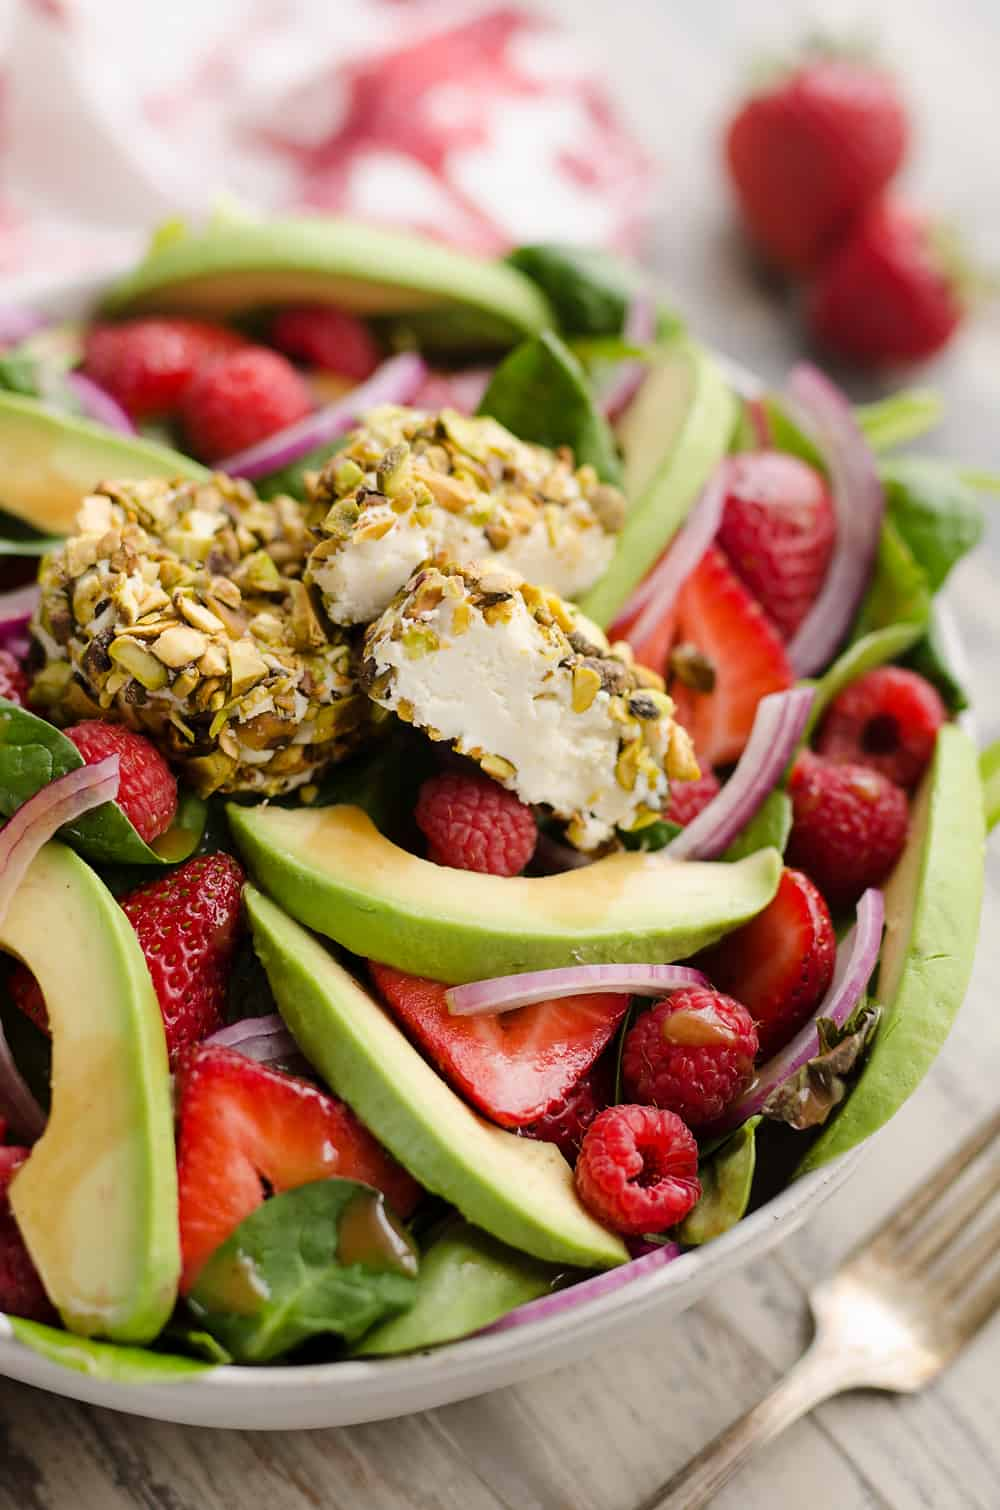 Pistachio Crusted Goat Cheese Berry Salad serving